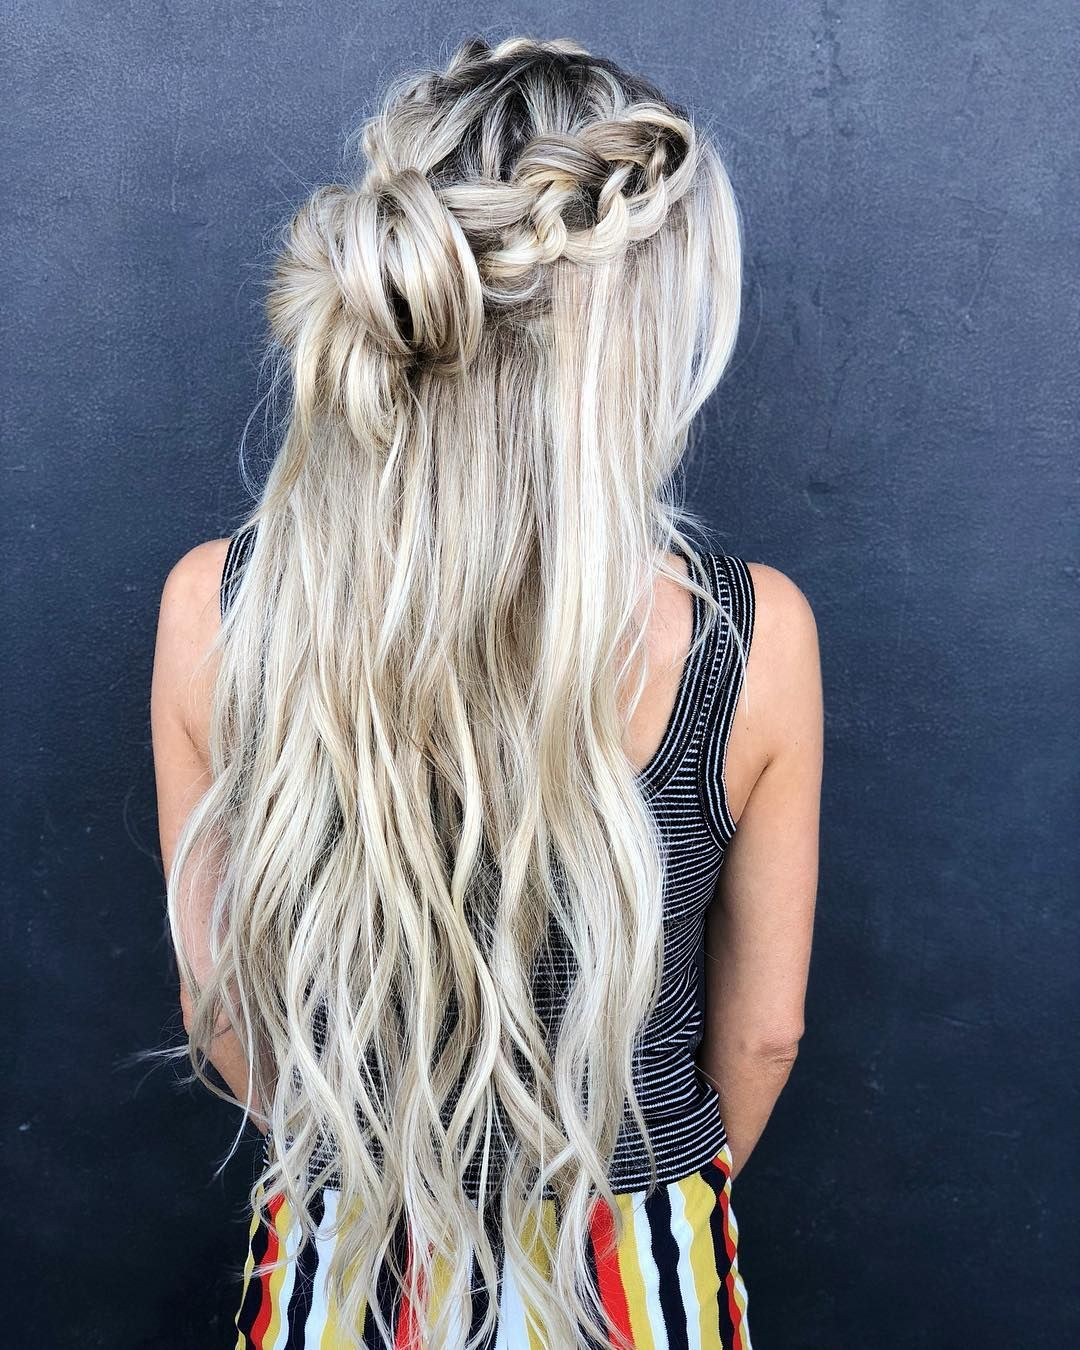 """when summer is just around the corner &gt;&gt; ☀️☀️☀️ color by @hairby_chrissy // braid by ✋on Kayla Oberg<p><a href=""""http://www.homeinteriordesign.org/2018/02/short-guide-to-interior-decoration.html"""">Short guide to interior decoration</a></p>"""